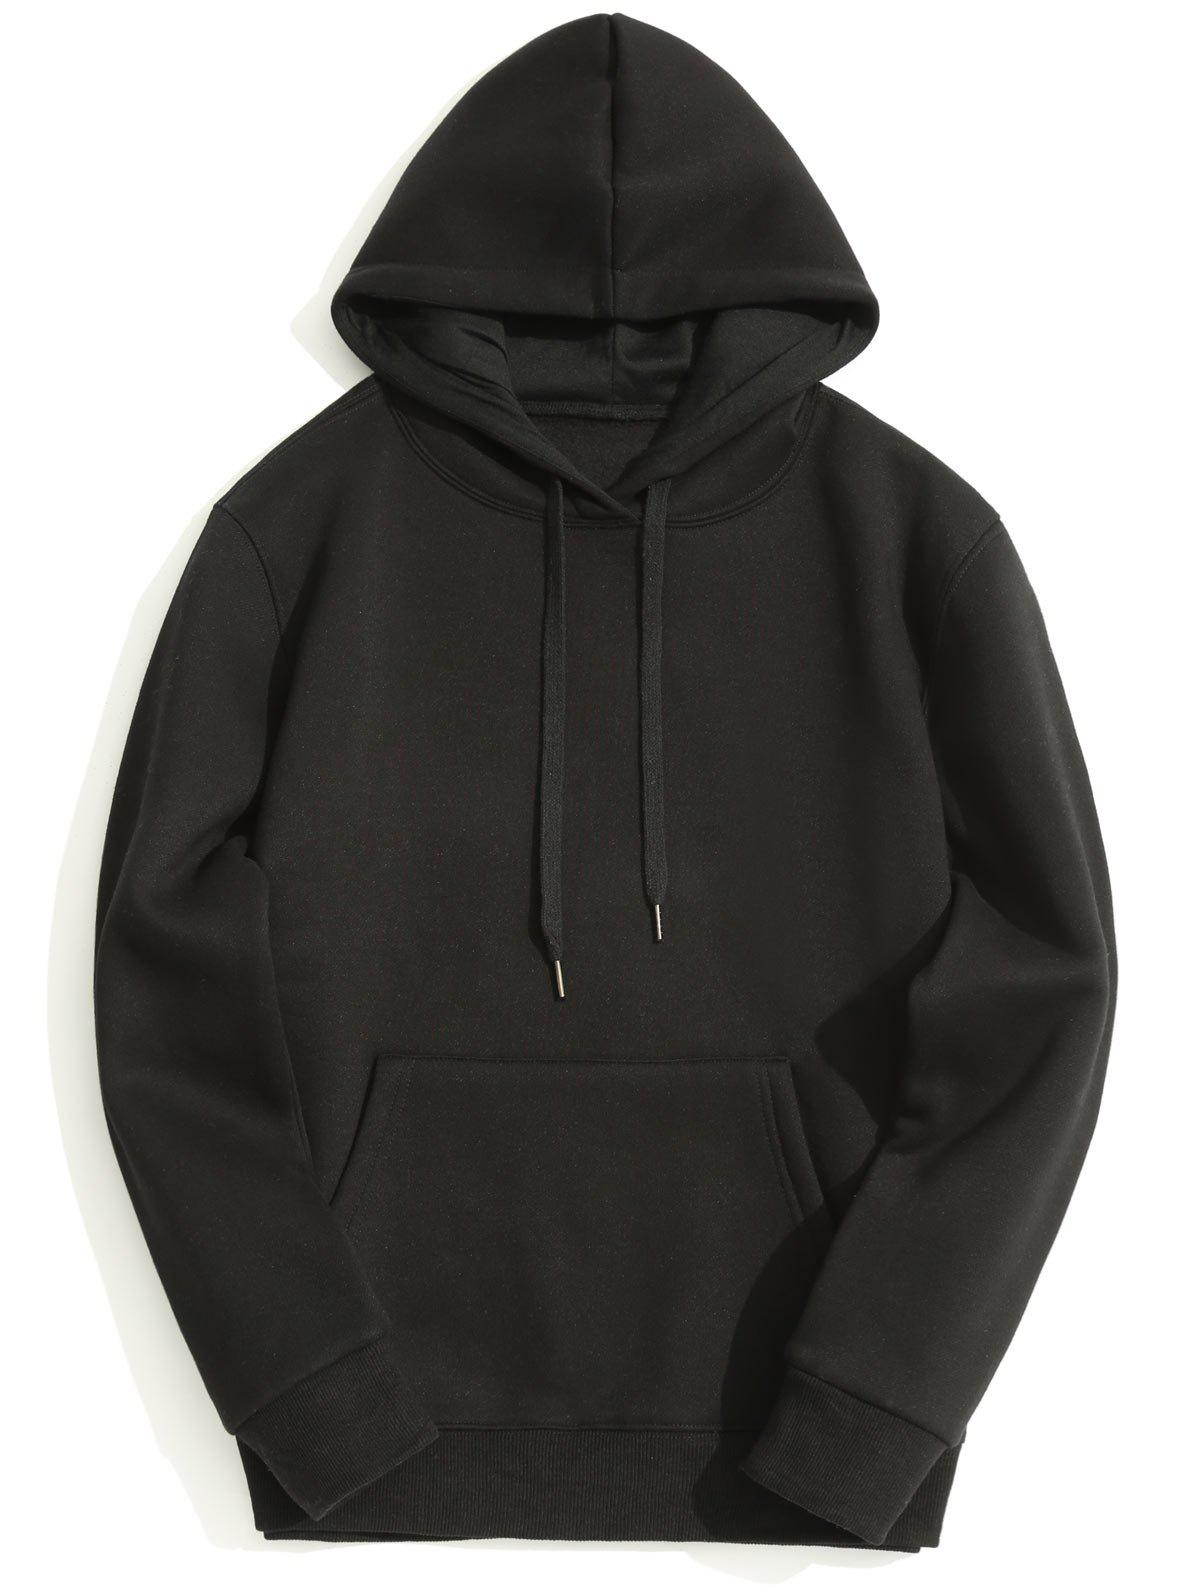 Hot Fleece Lining Mens Hoodie